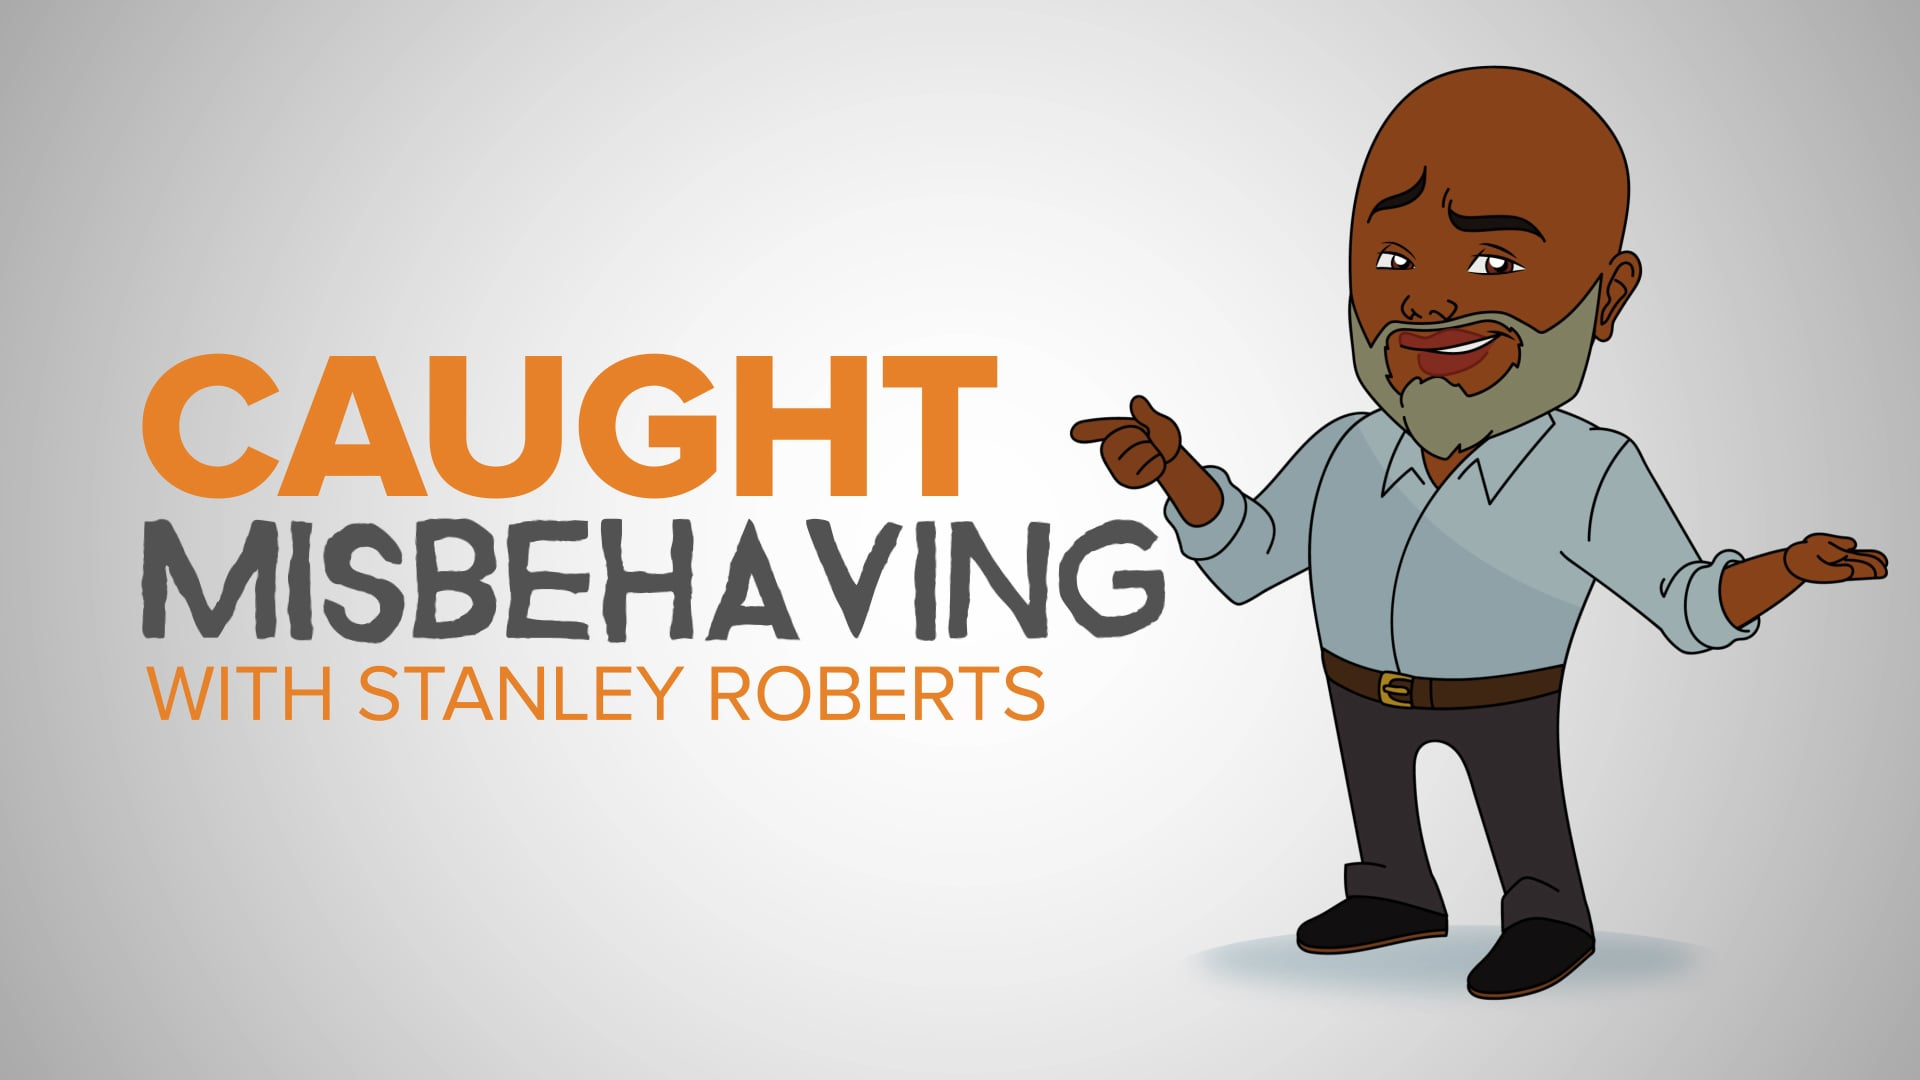 Caught Misbehaving with Stanley Roberts